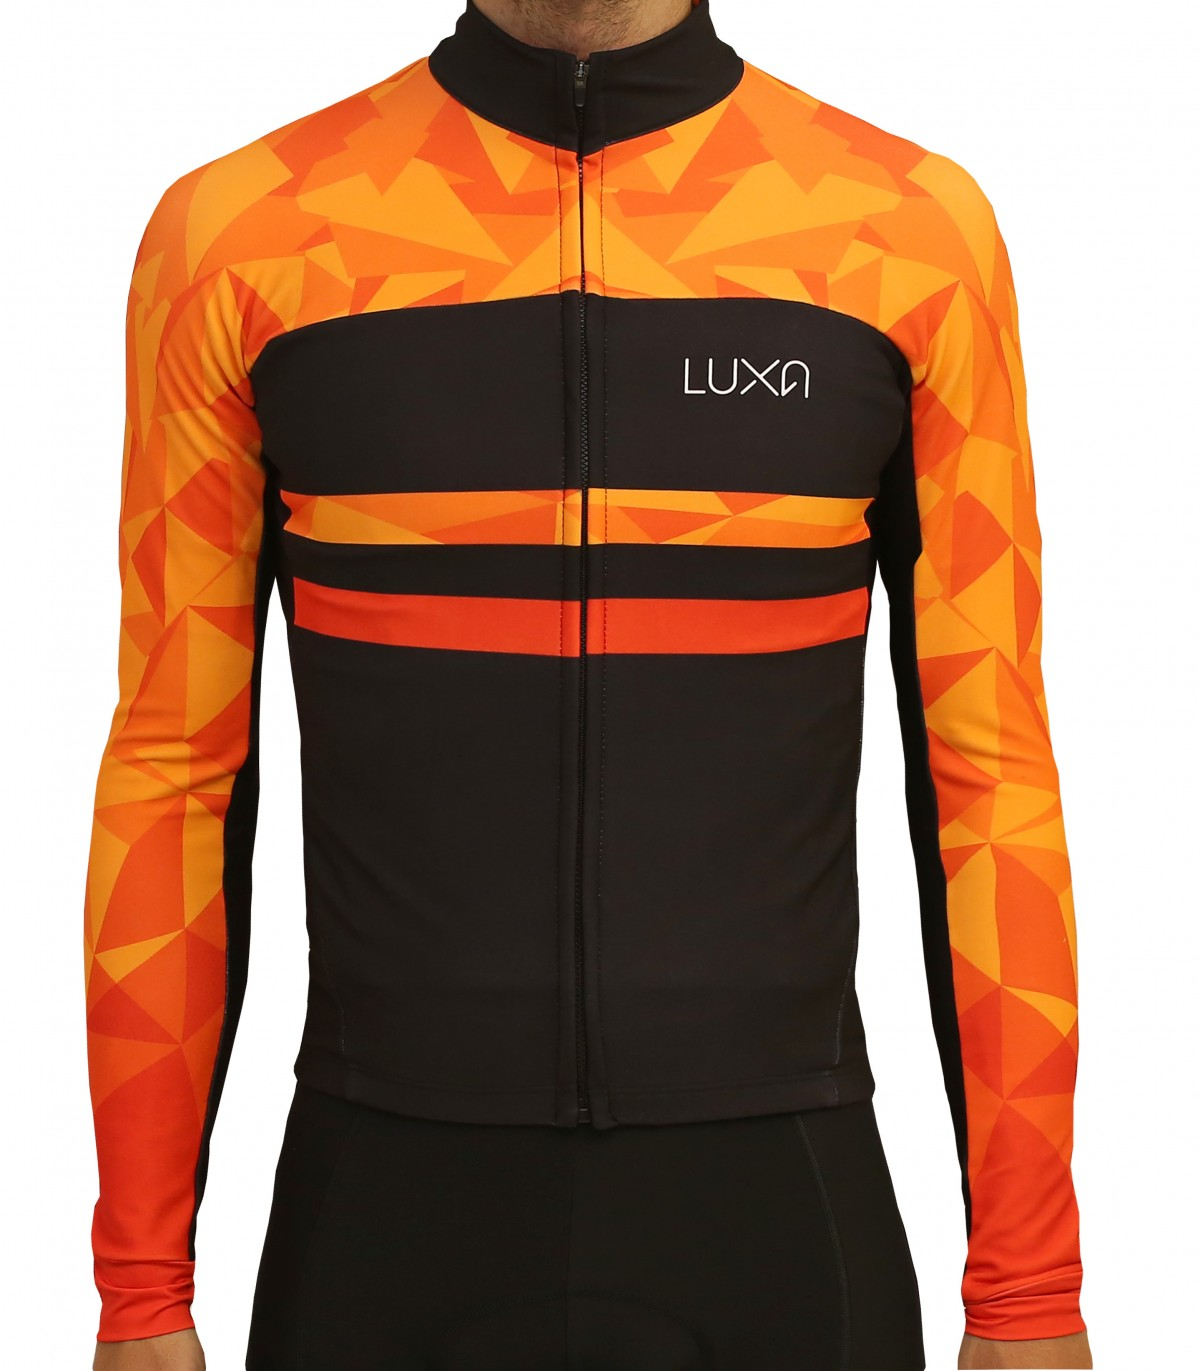 Warm Orange Long Sleeve Cycling Jersey 696972570